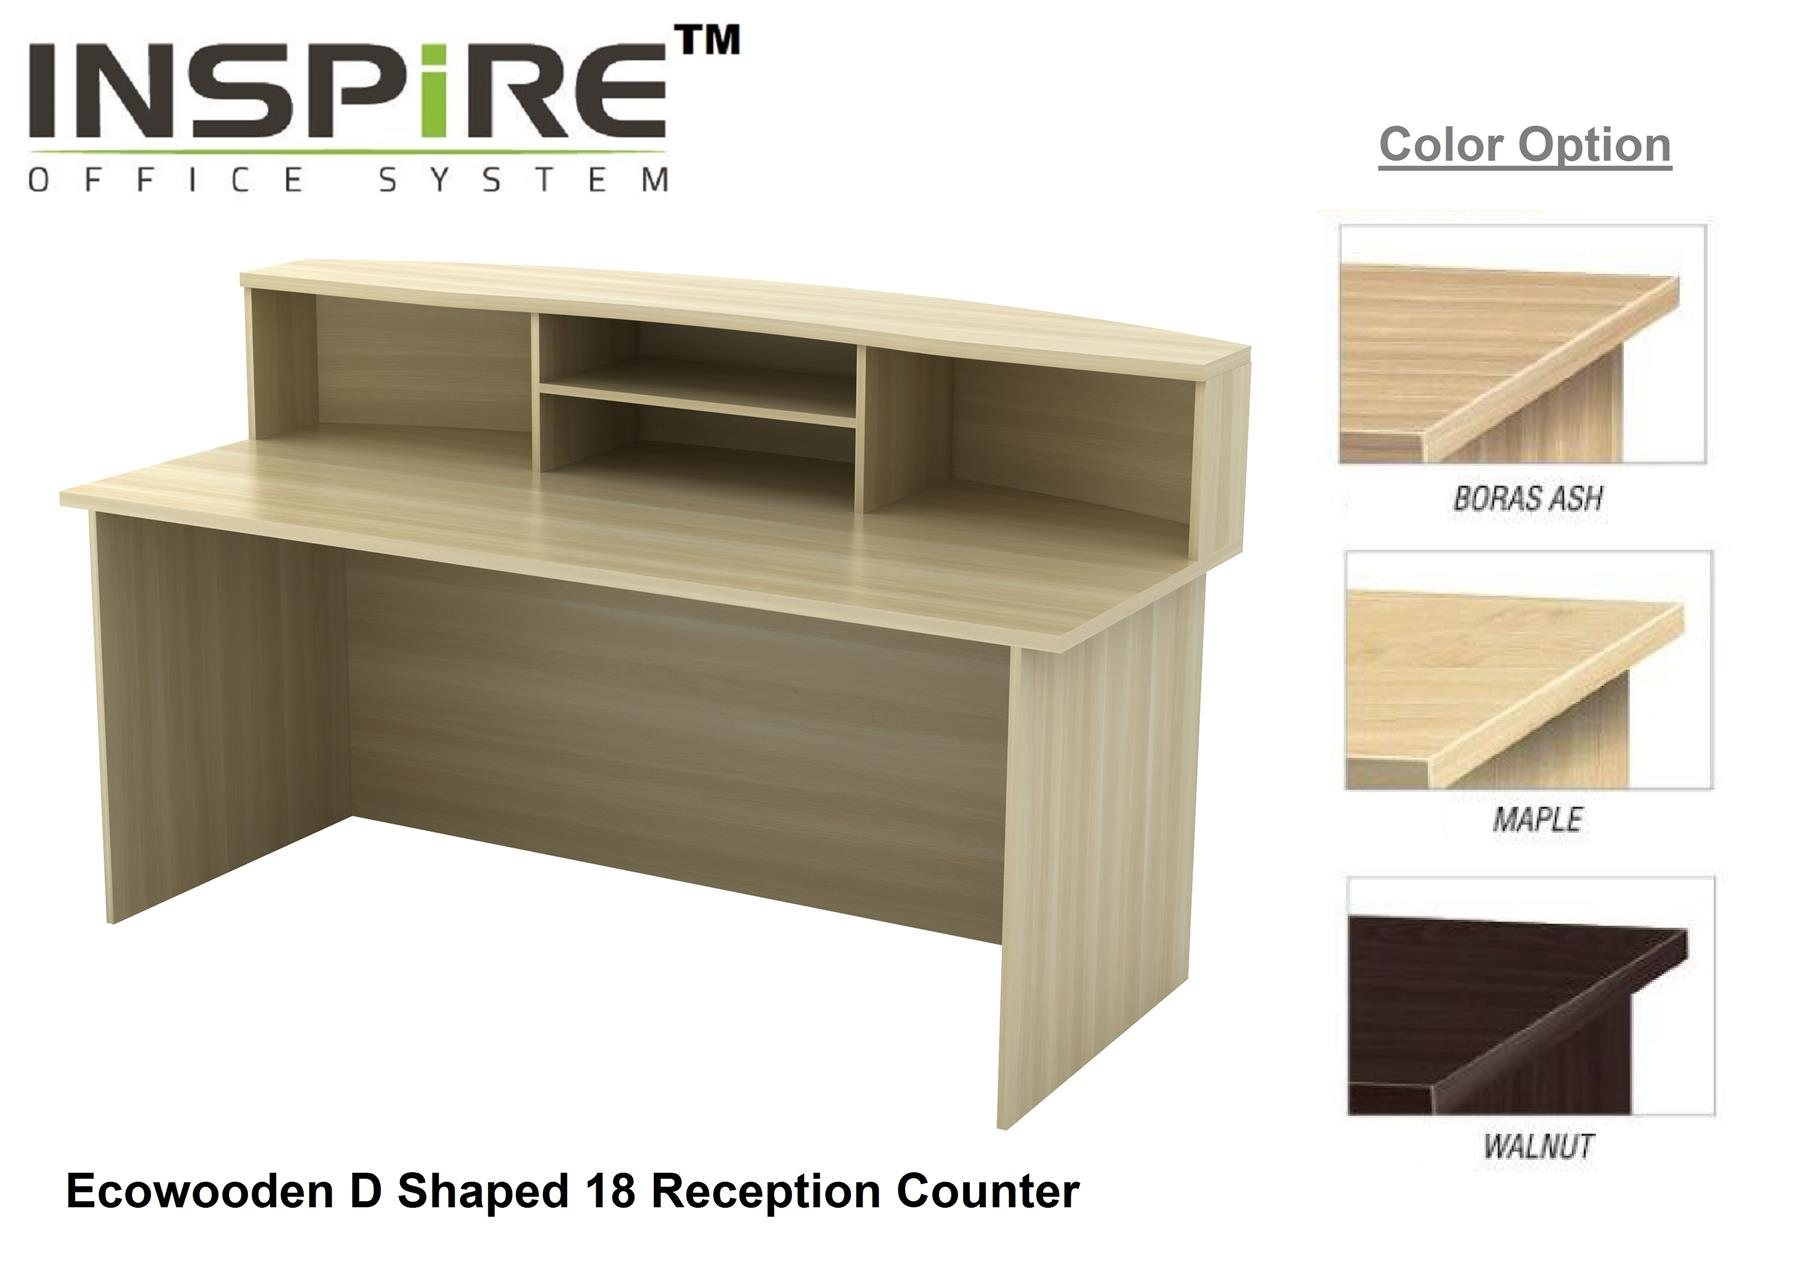 Ecowooden D Shaped 18 Reception Counter